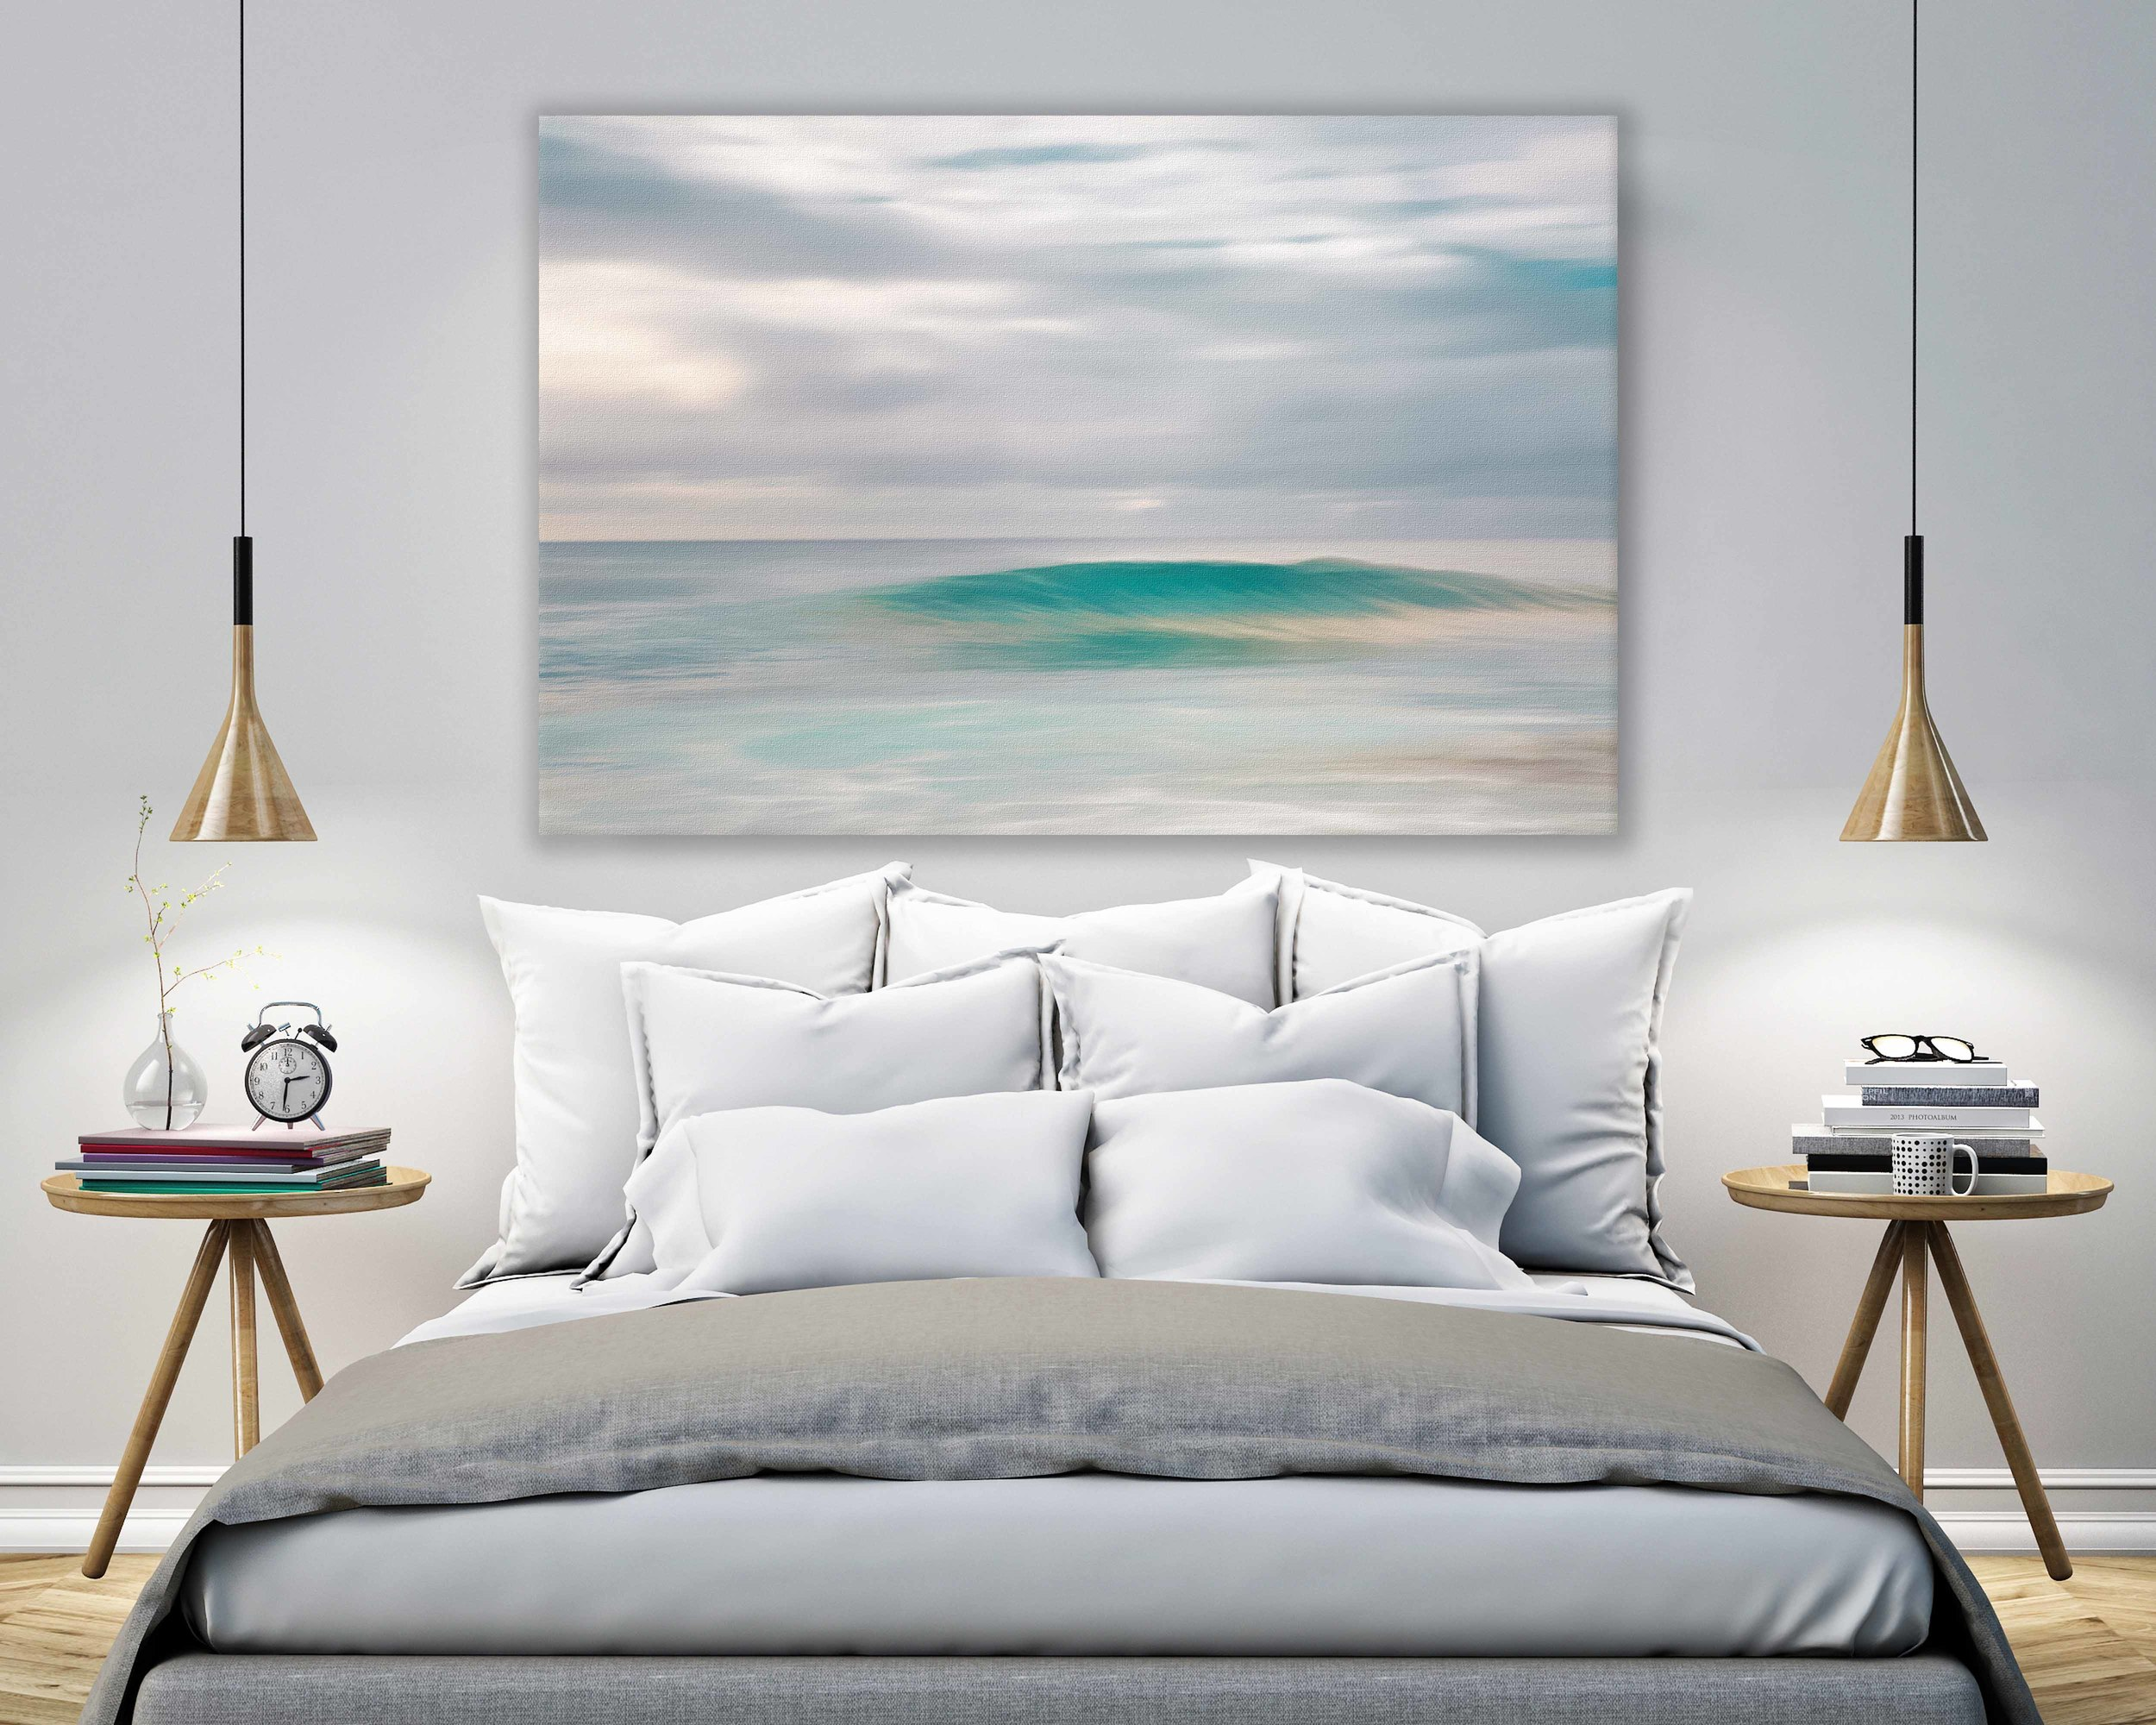 READY-TO-HANG CANVASES